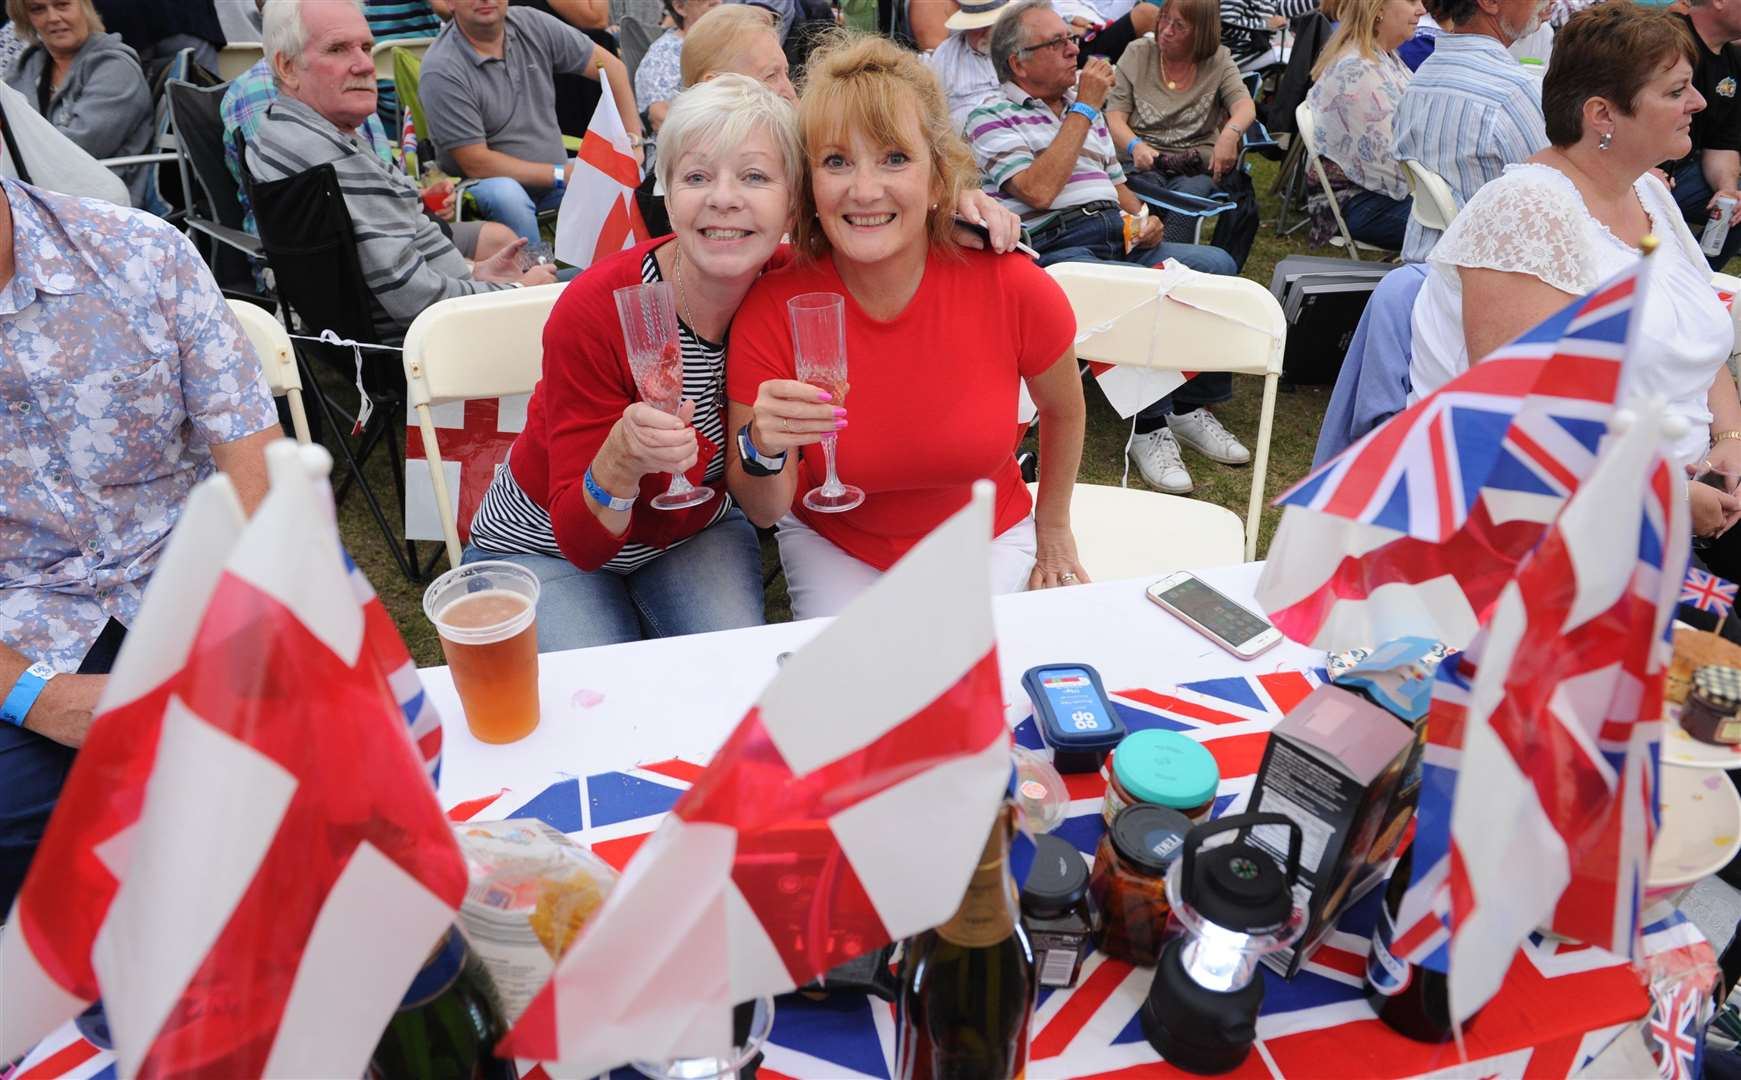 Last year's Castle Concerts fun for Lynne Howard and Karon Vander-Heiden. Picture: Steve Crispe